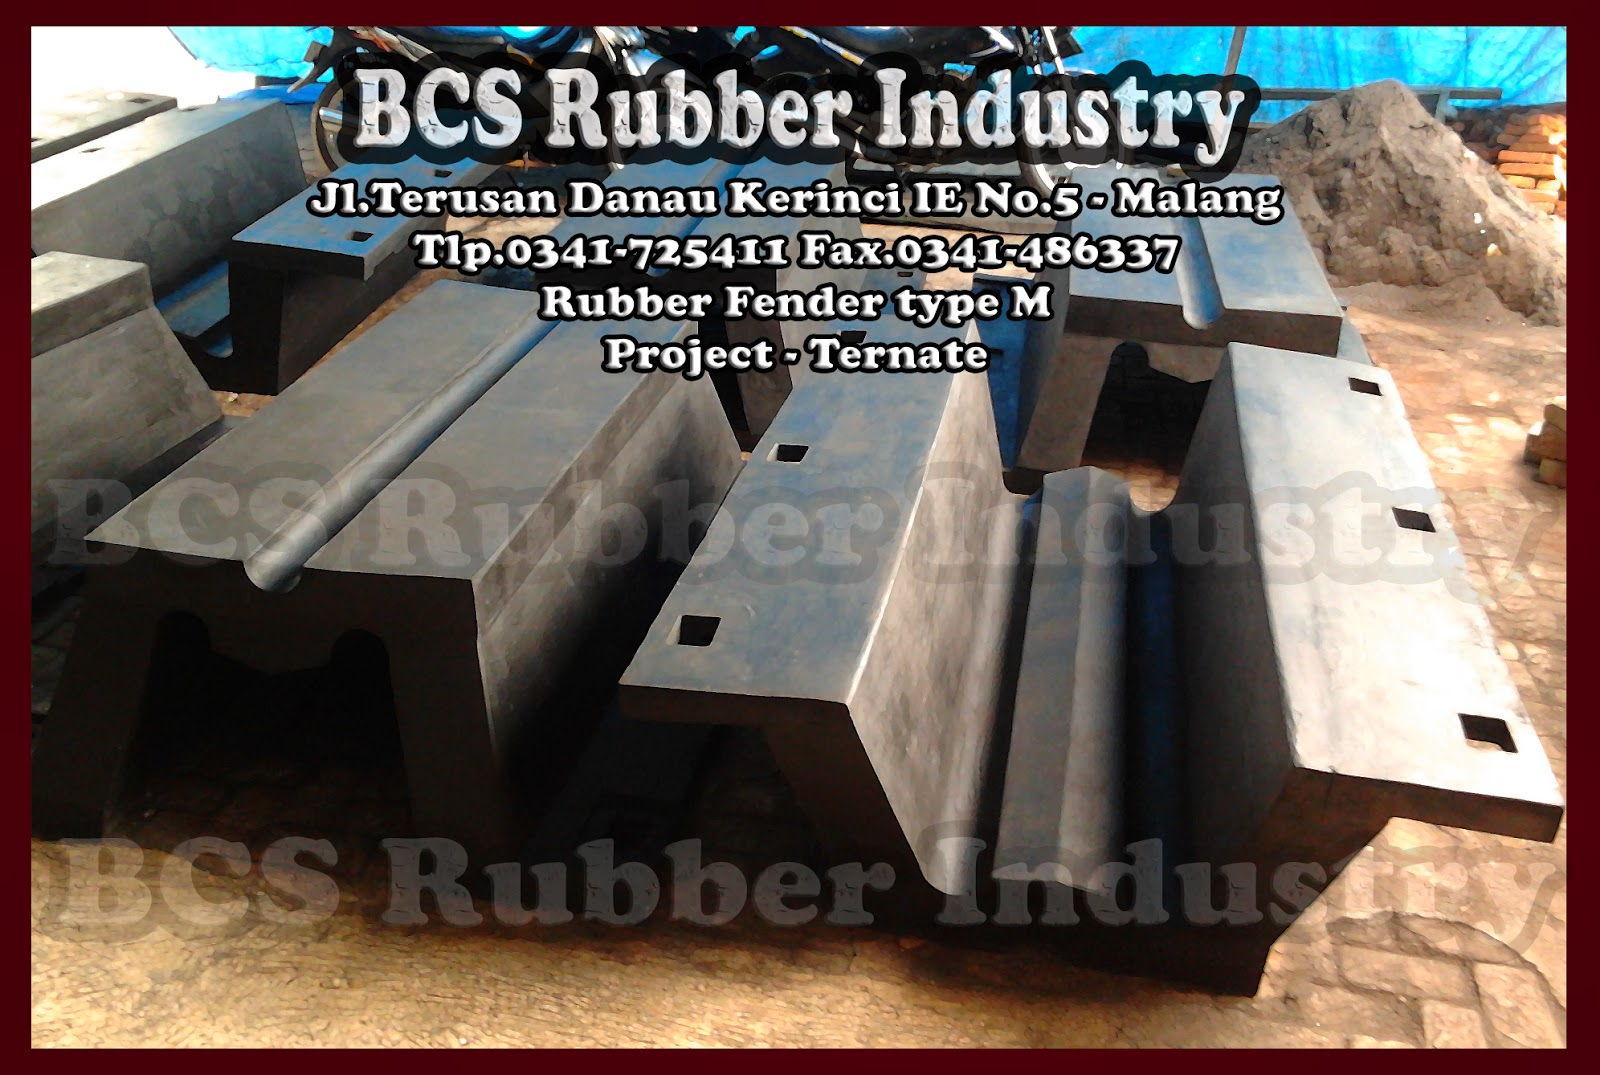 Rubber Fender,Rubber Fender Type M,Rubber Fender,BCS Rubber Fender